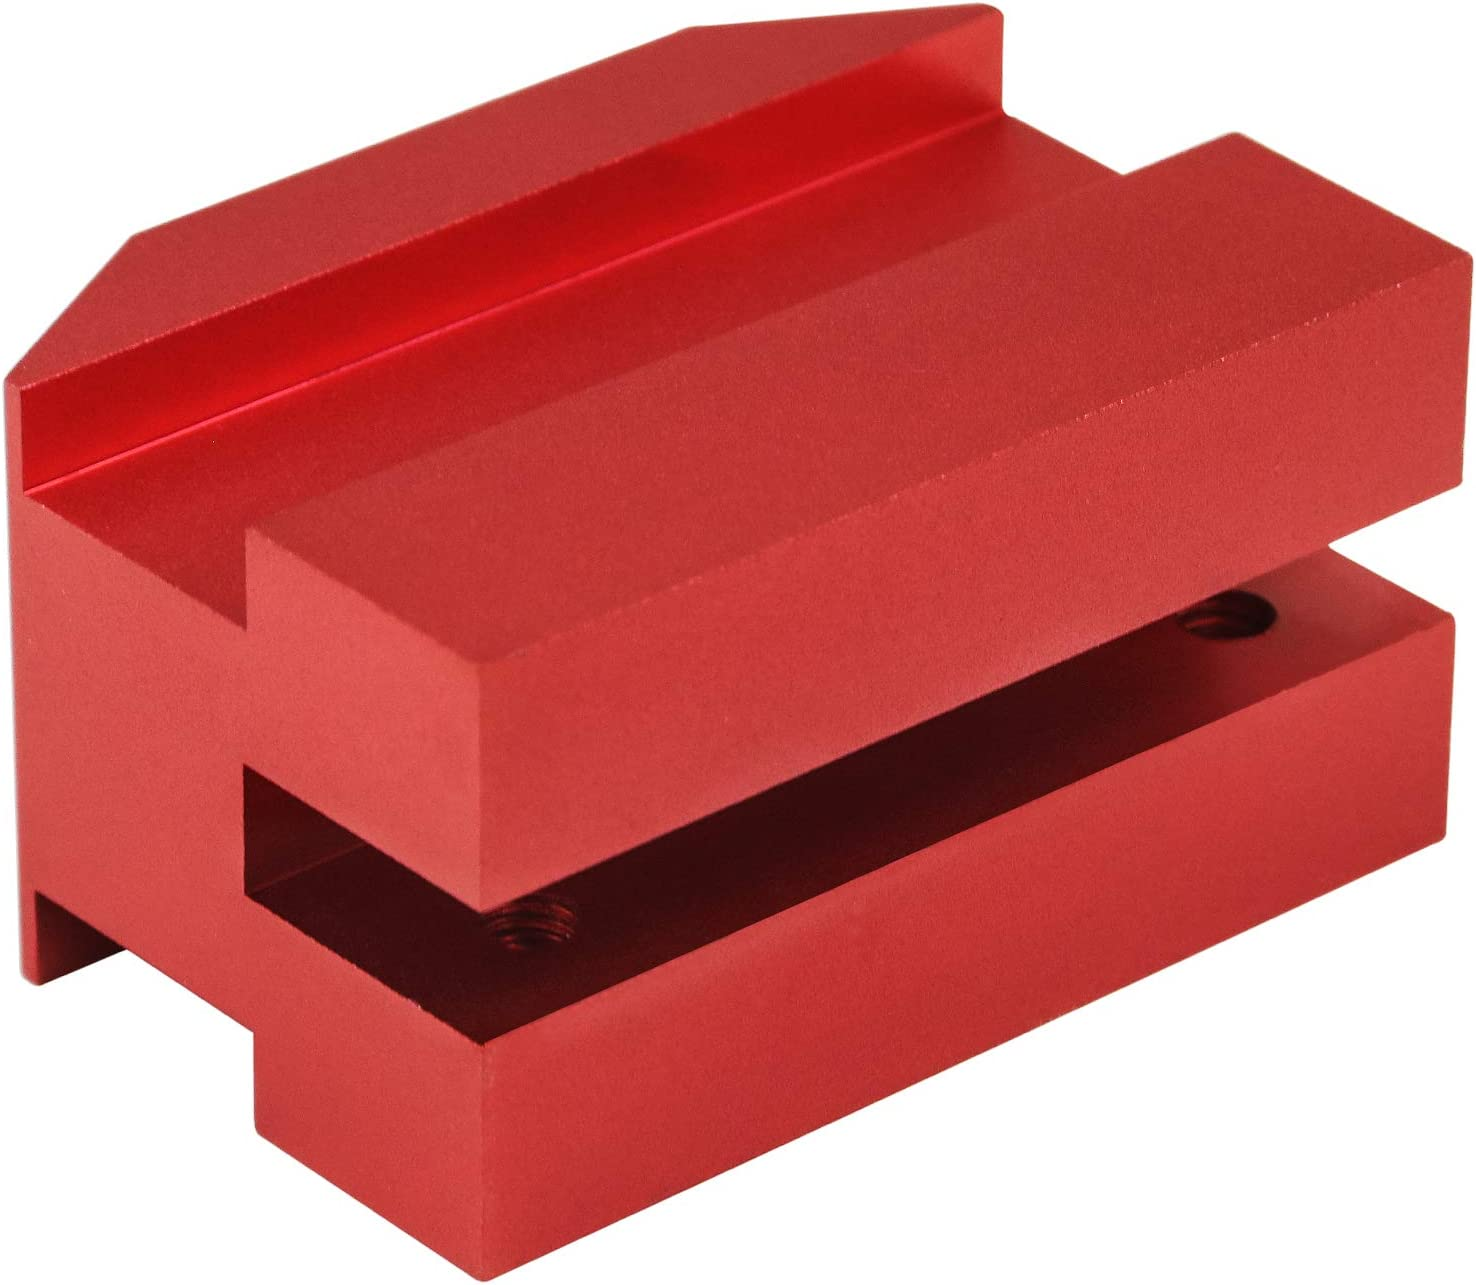 Sporthfish Jack Pad Billet Anodized Red Aluminum Lift Pads Floor Jack Bolt on Jack Points Fit for 6th gen Camaro 16-18,Except Convertible